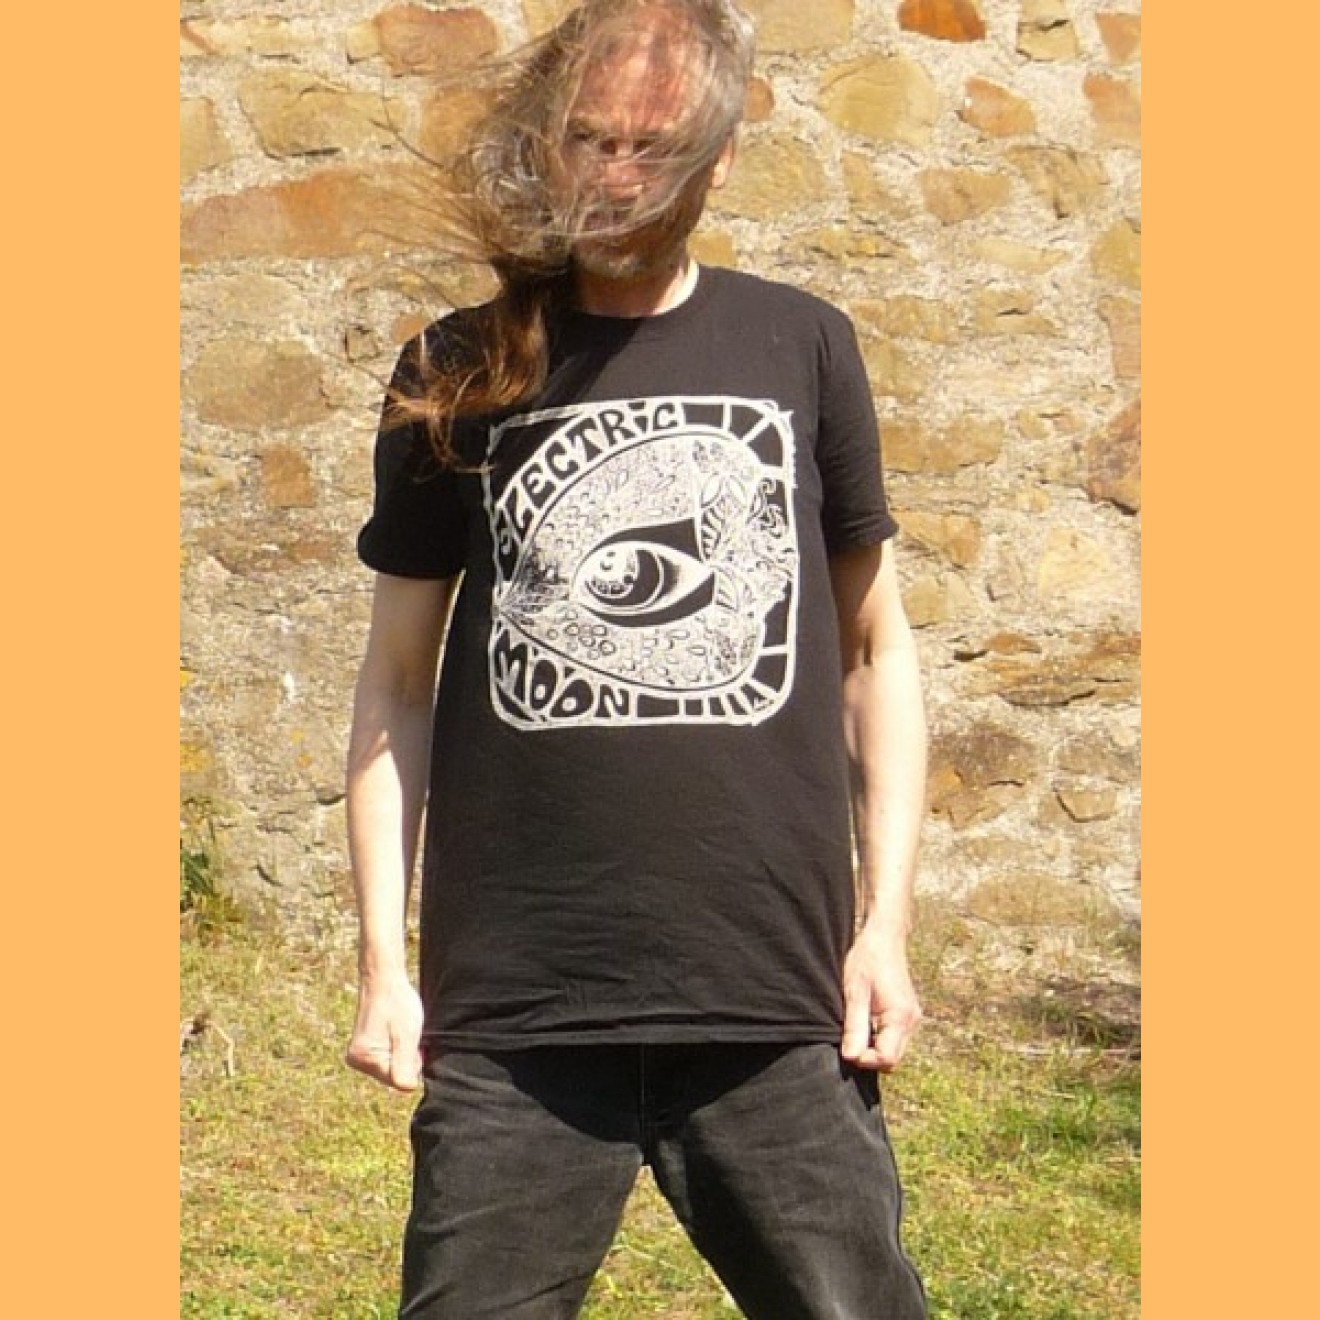 ELECTRIC MOON - t-shirt 2019 schwarz